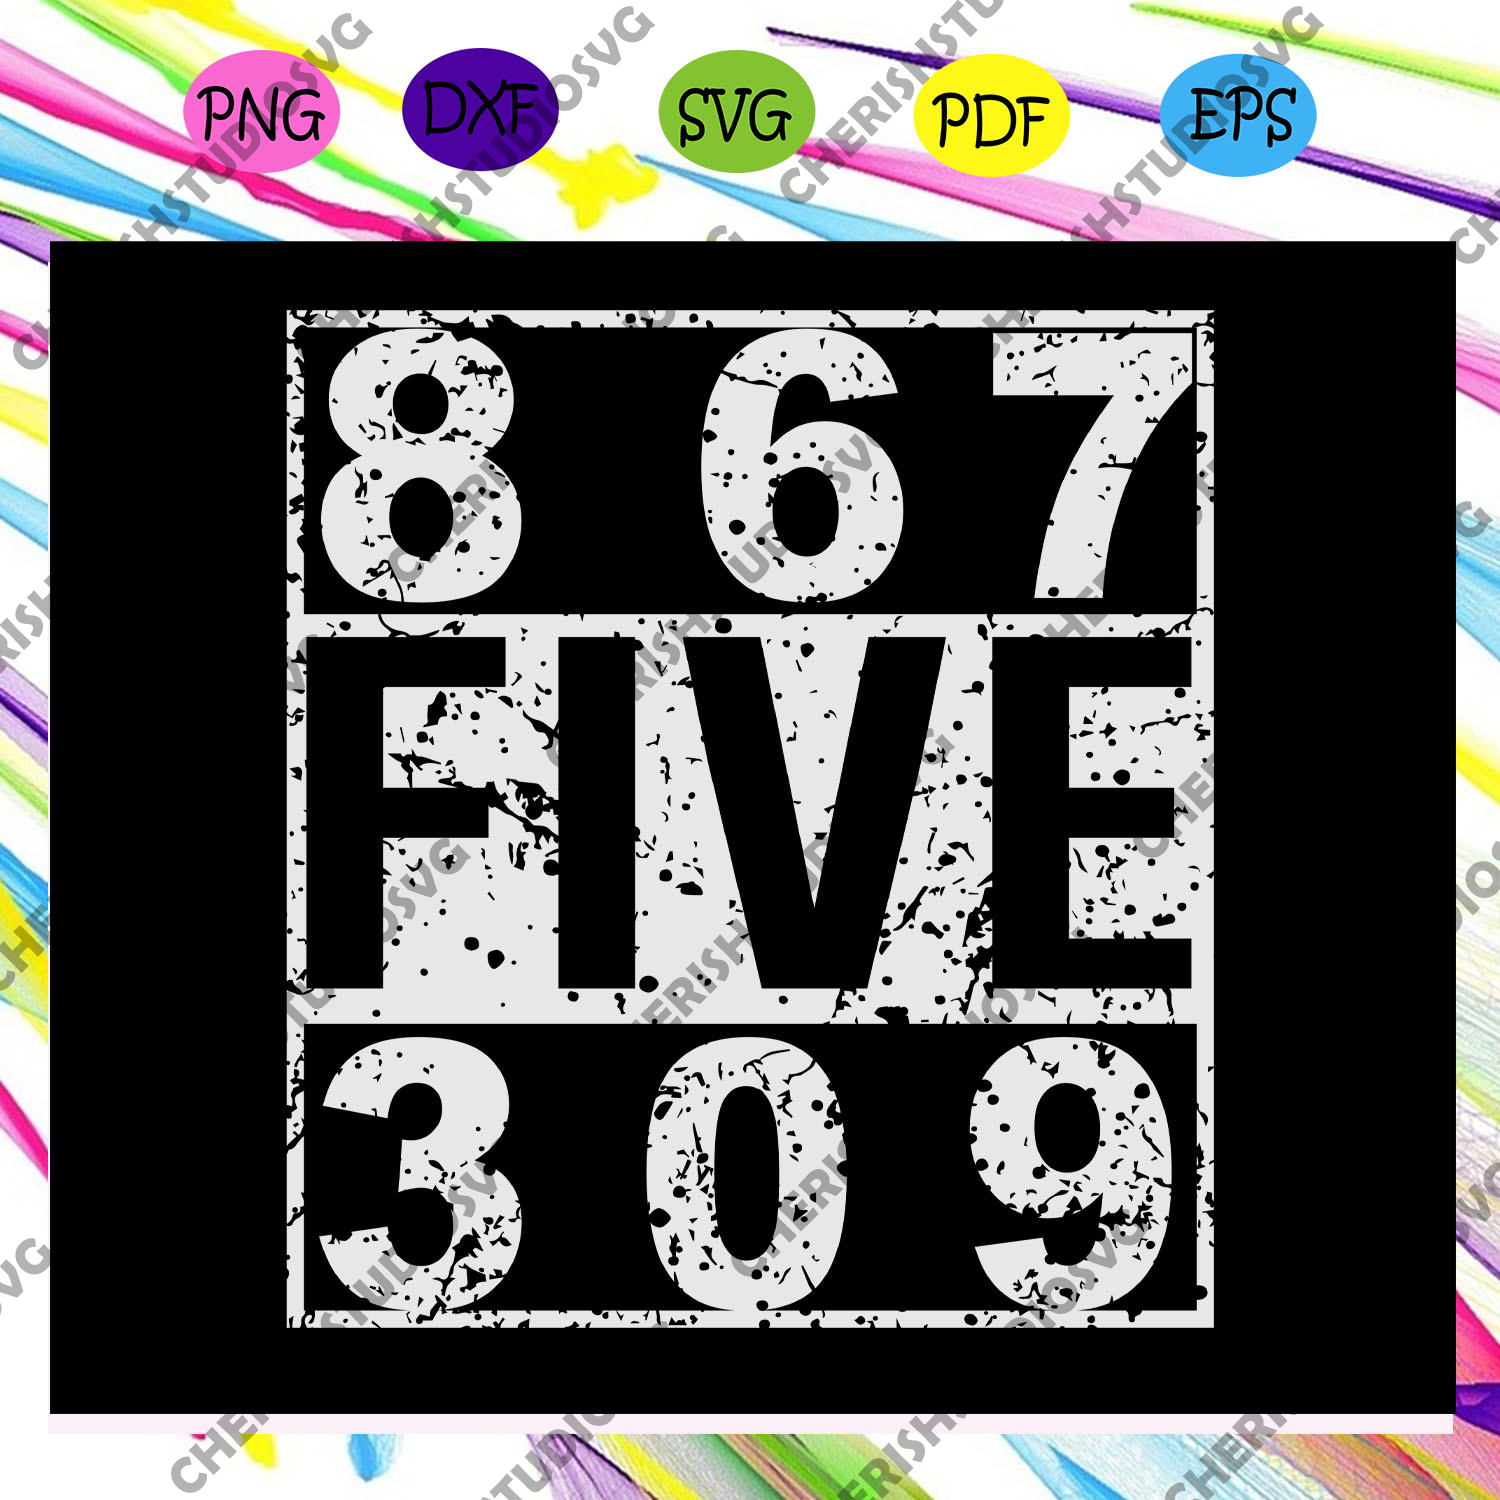 867 five 309, 8675309 svg, vintage Eighties svg,files For cricut Silhouette SVG, DXF, EPS, PNG Instant Download